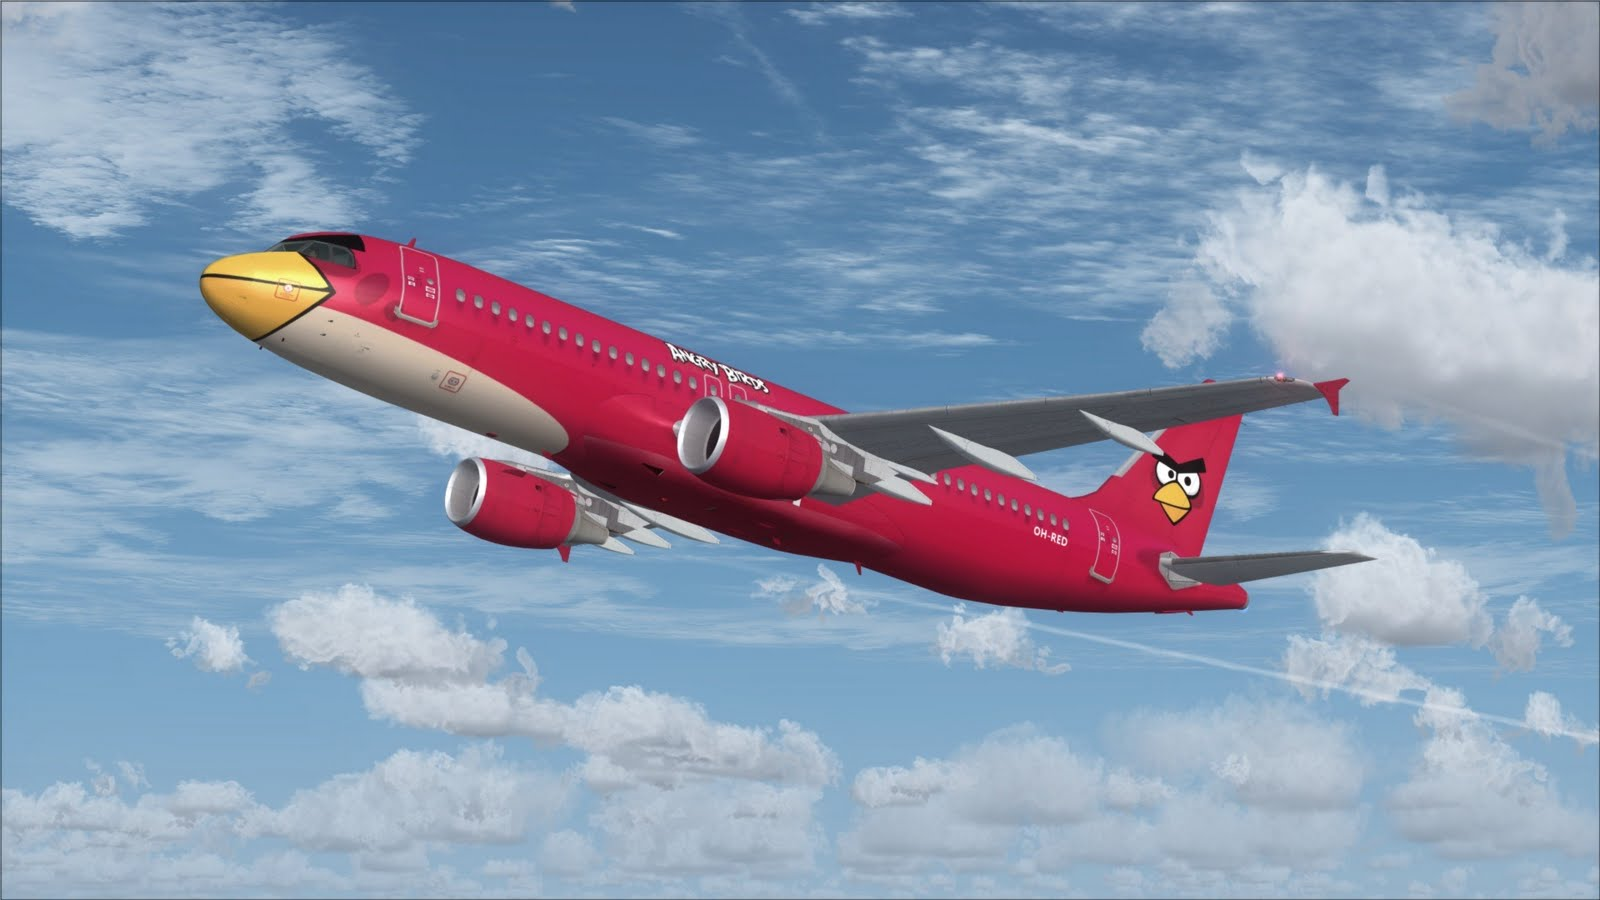 Angry Birds Airplane - Aircraft (2)